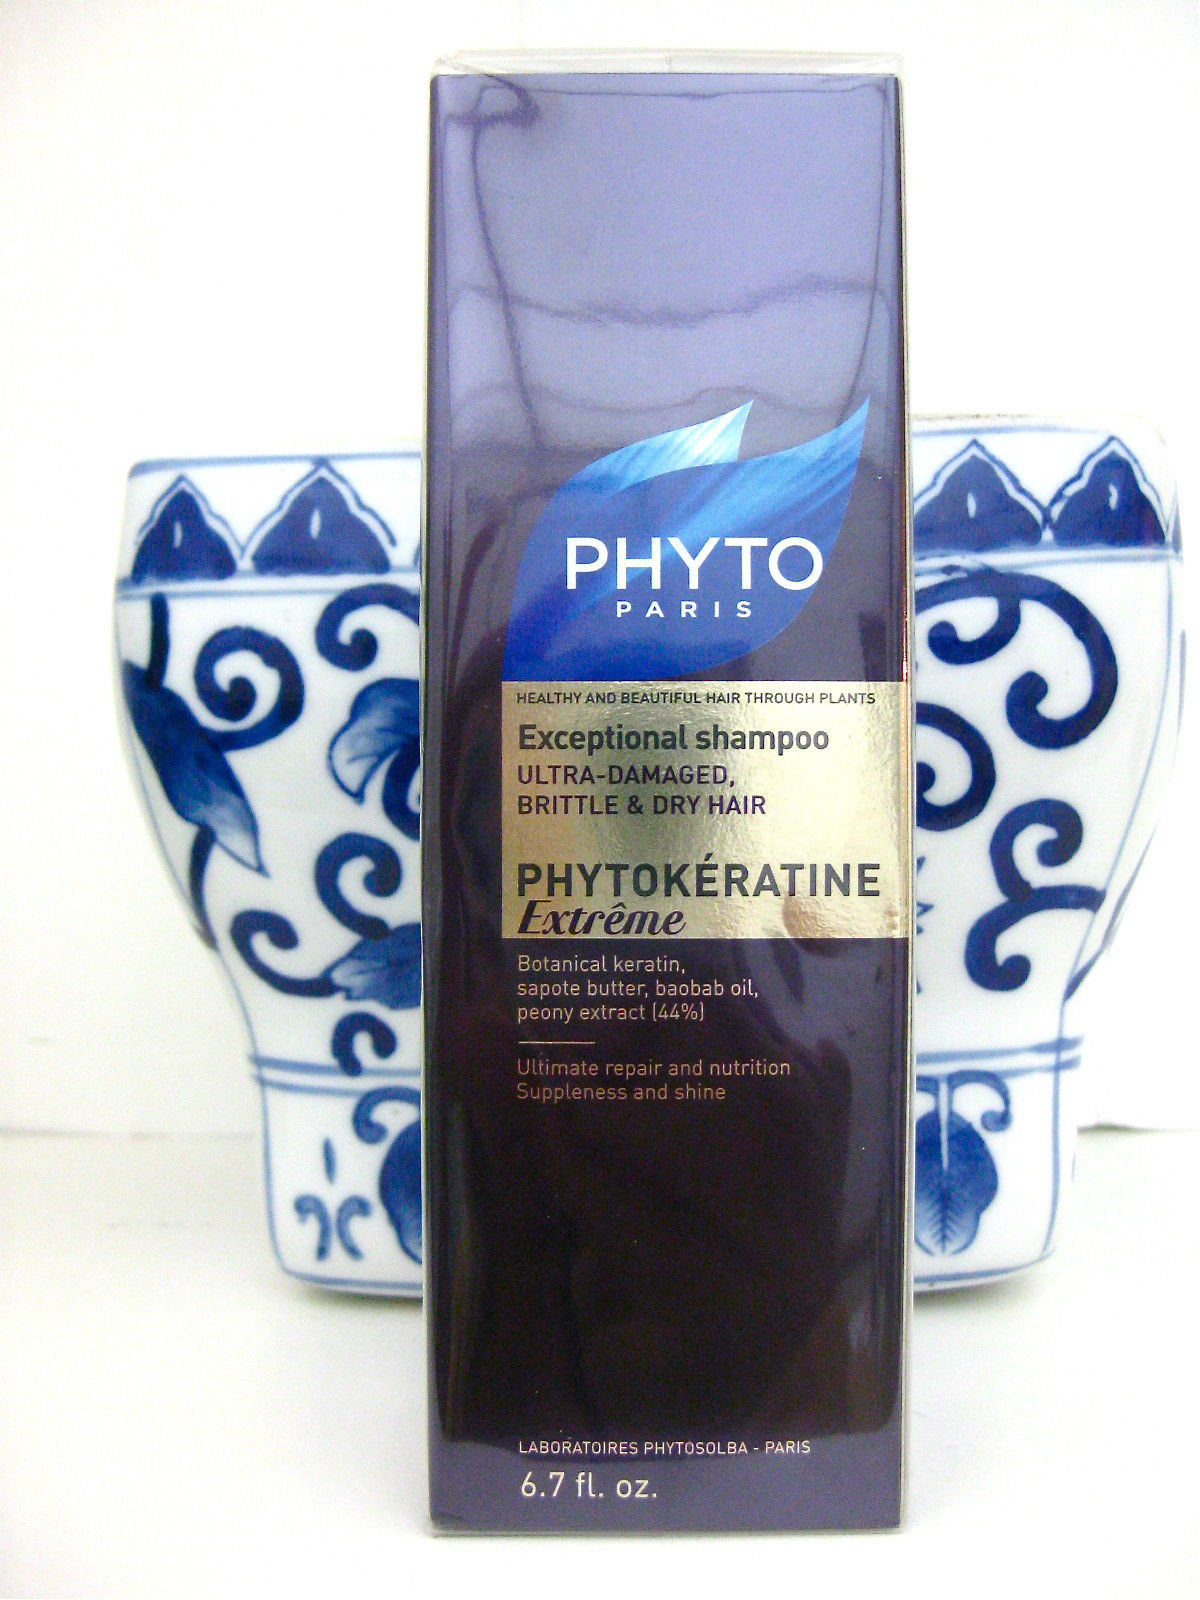 PHYTO Phytokeratine Extreme Exceptional Shampoo ULTRA DAMAGED DRY BRITTLE HAIR